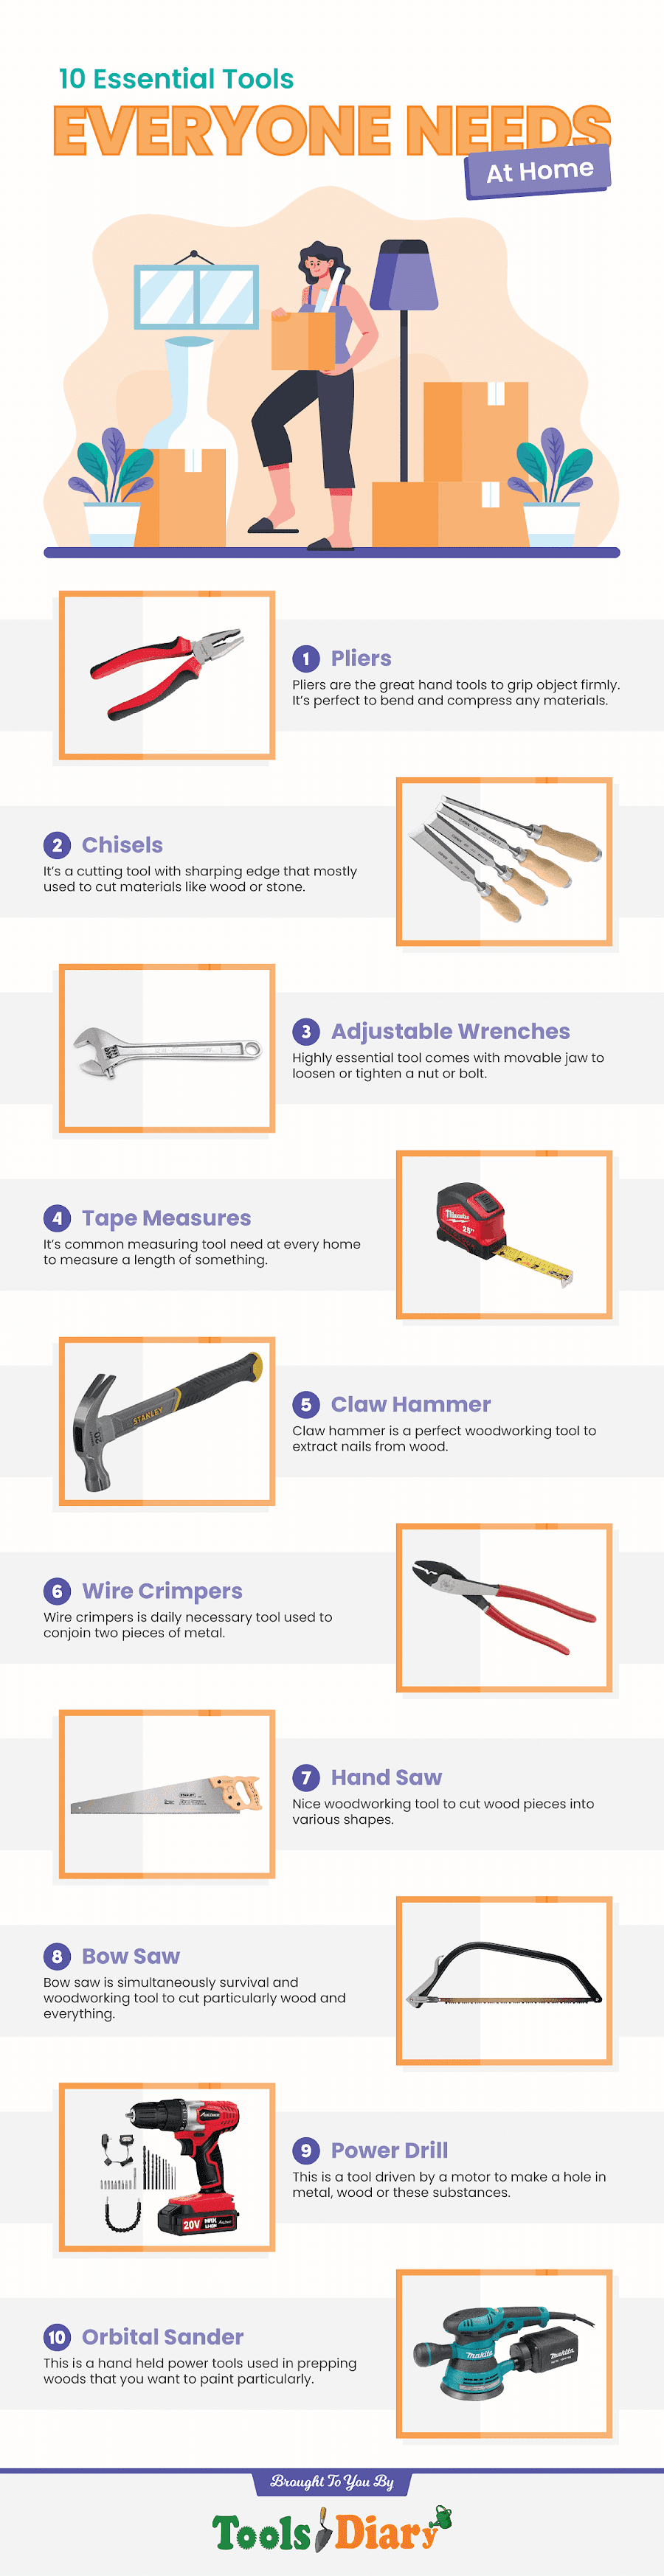 10 Essential Tools Everyone Needs At Home #ifographic